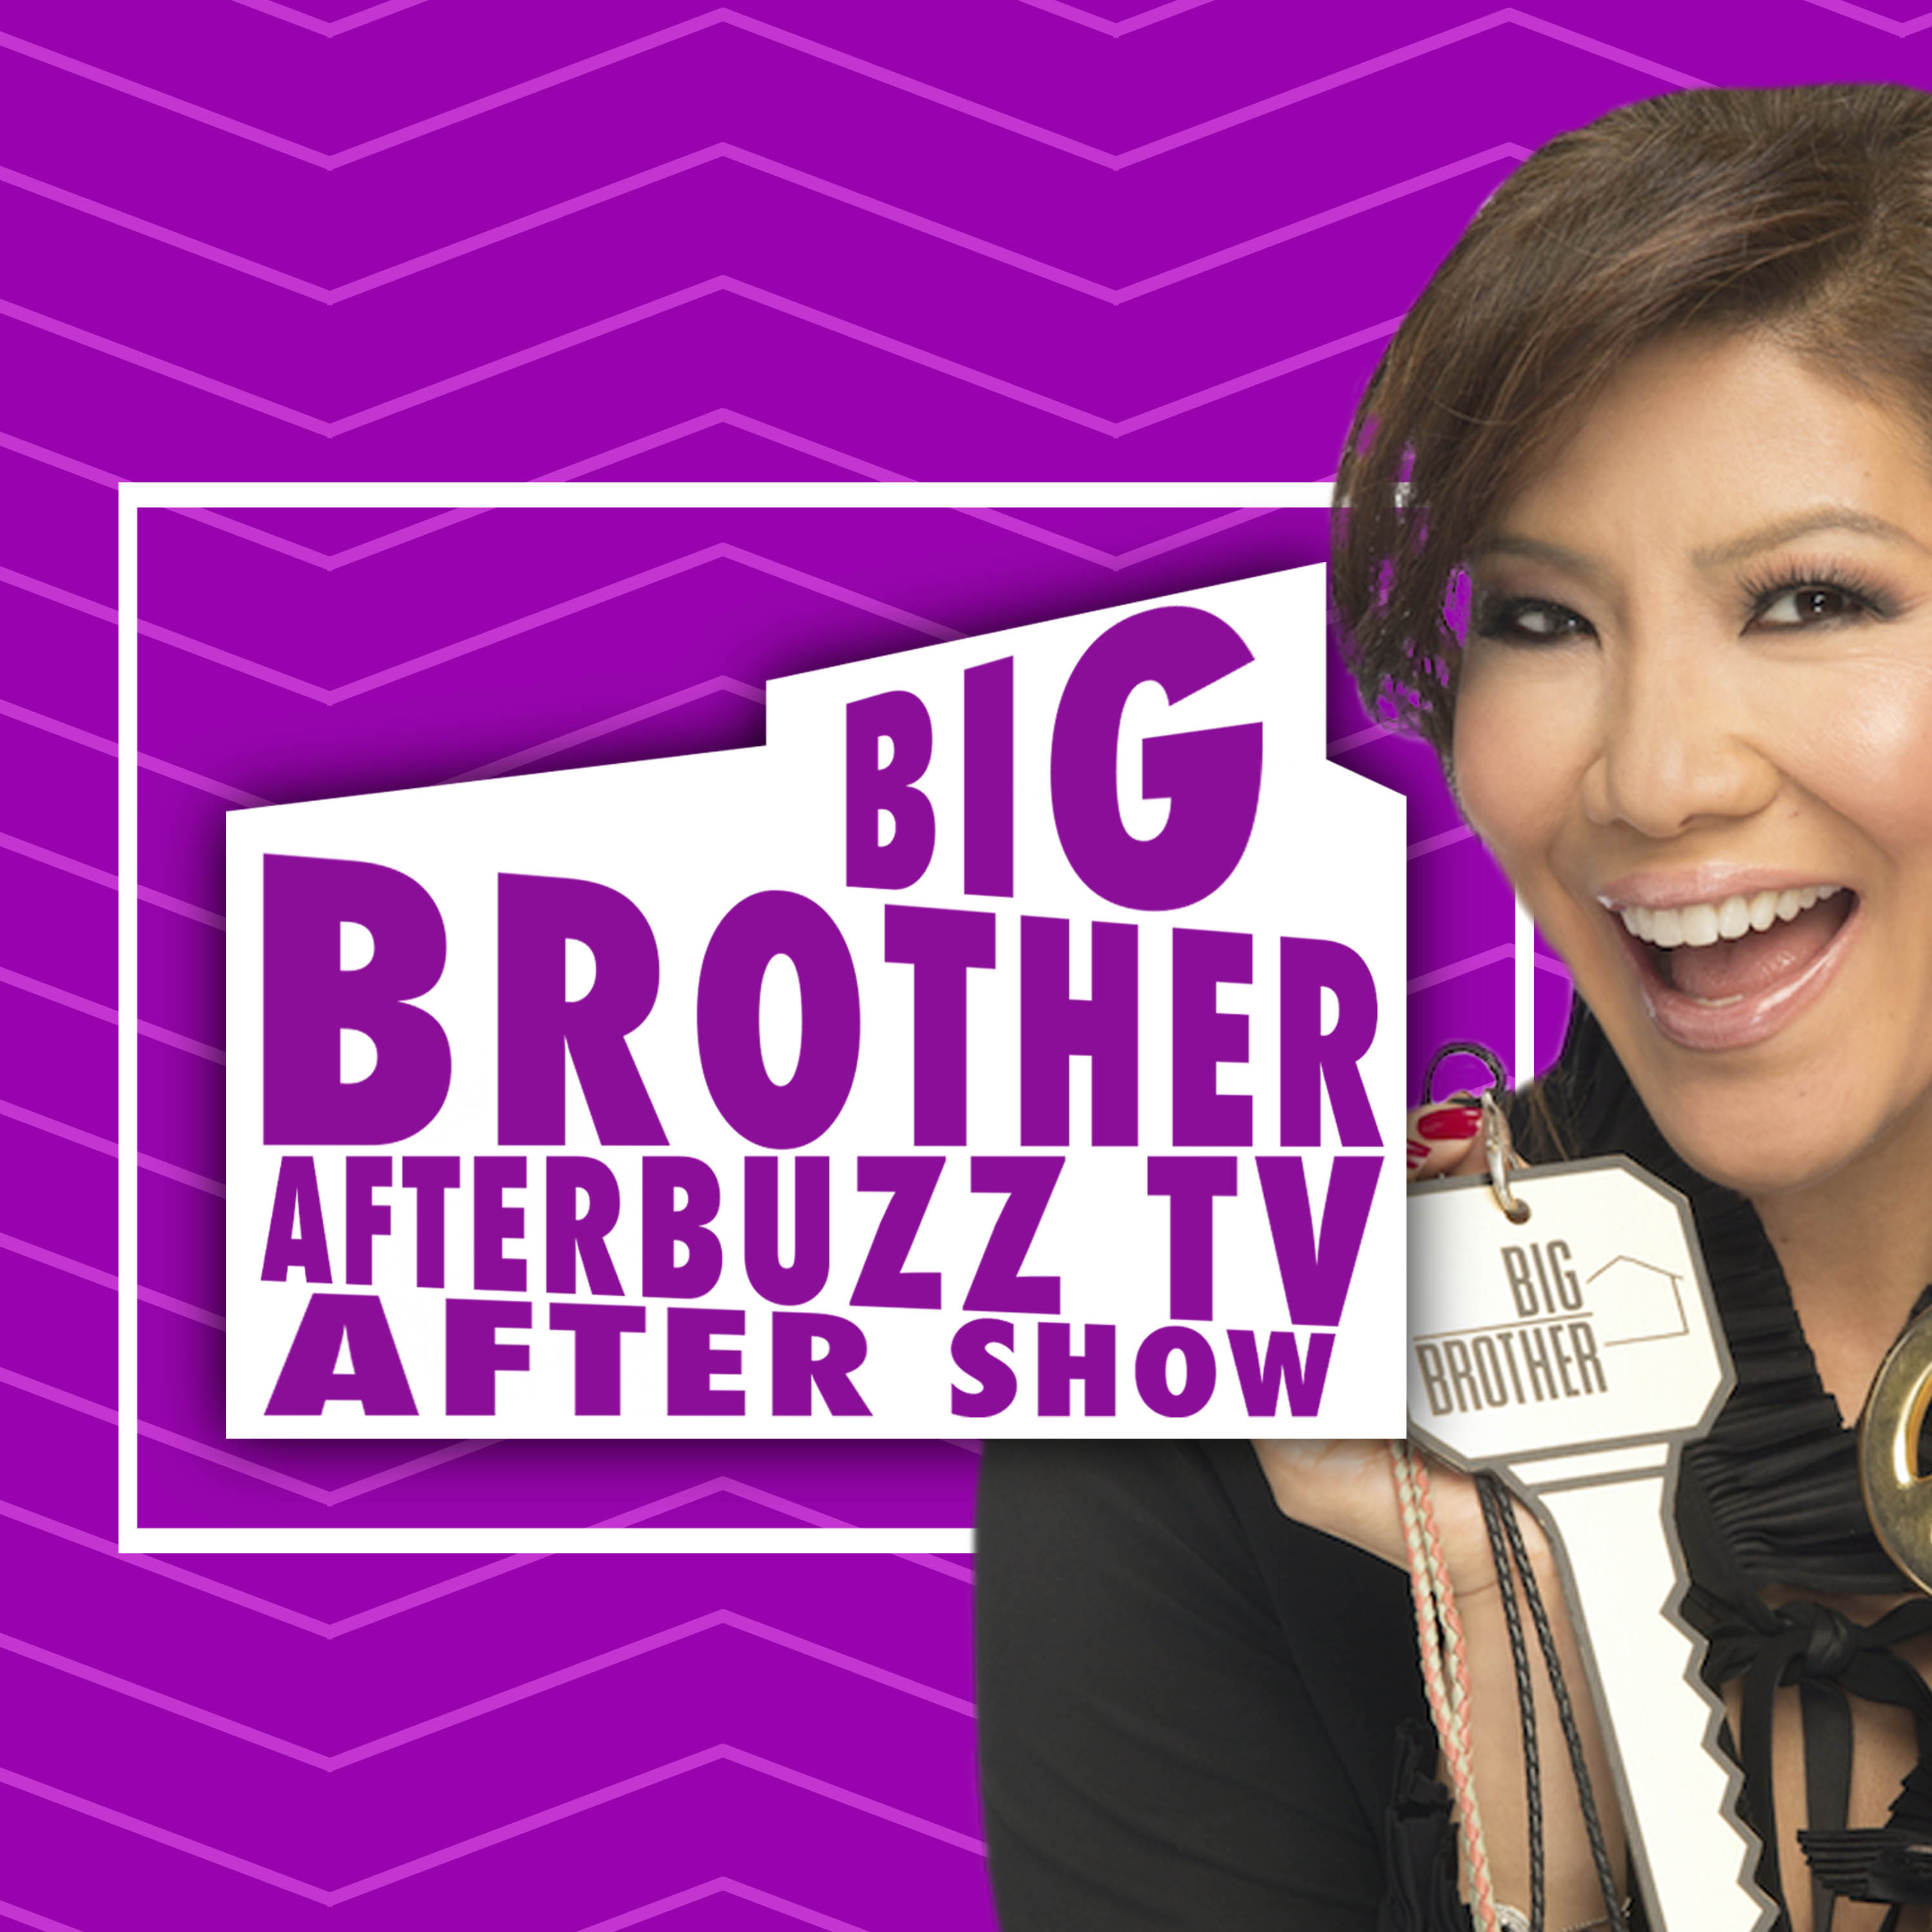 Big Brother Reviews & After Show